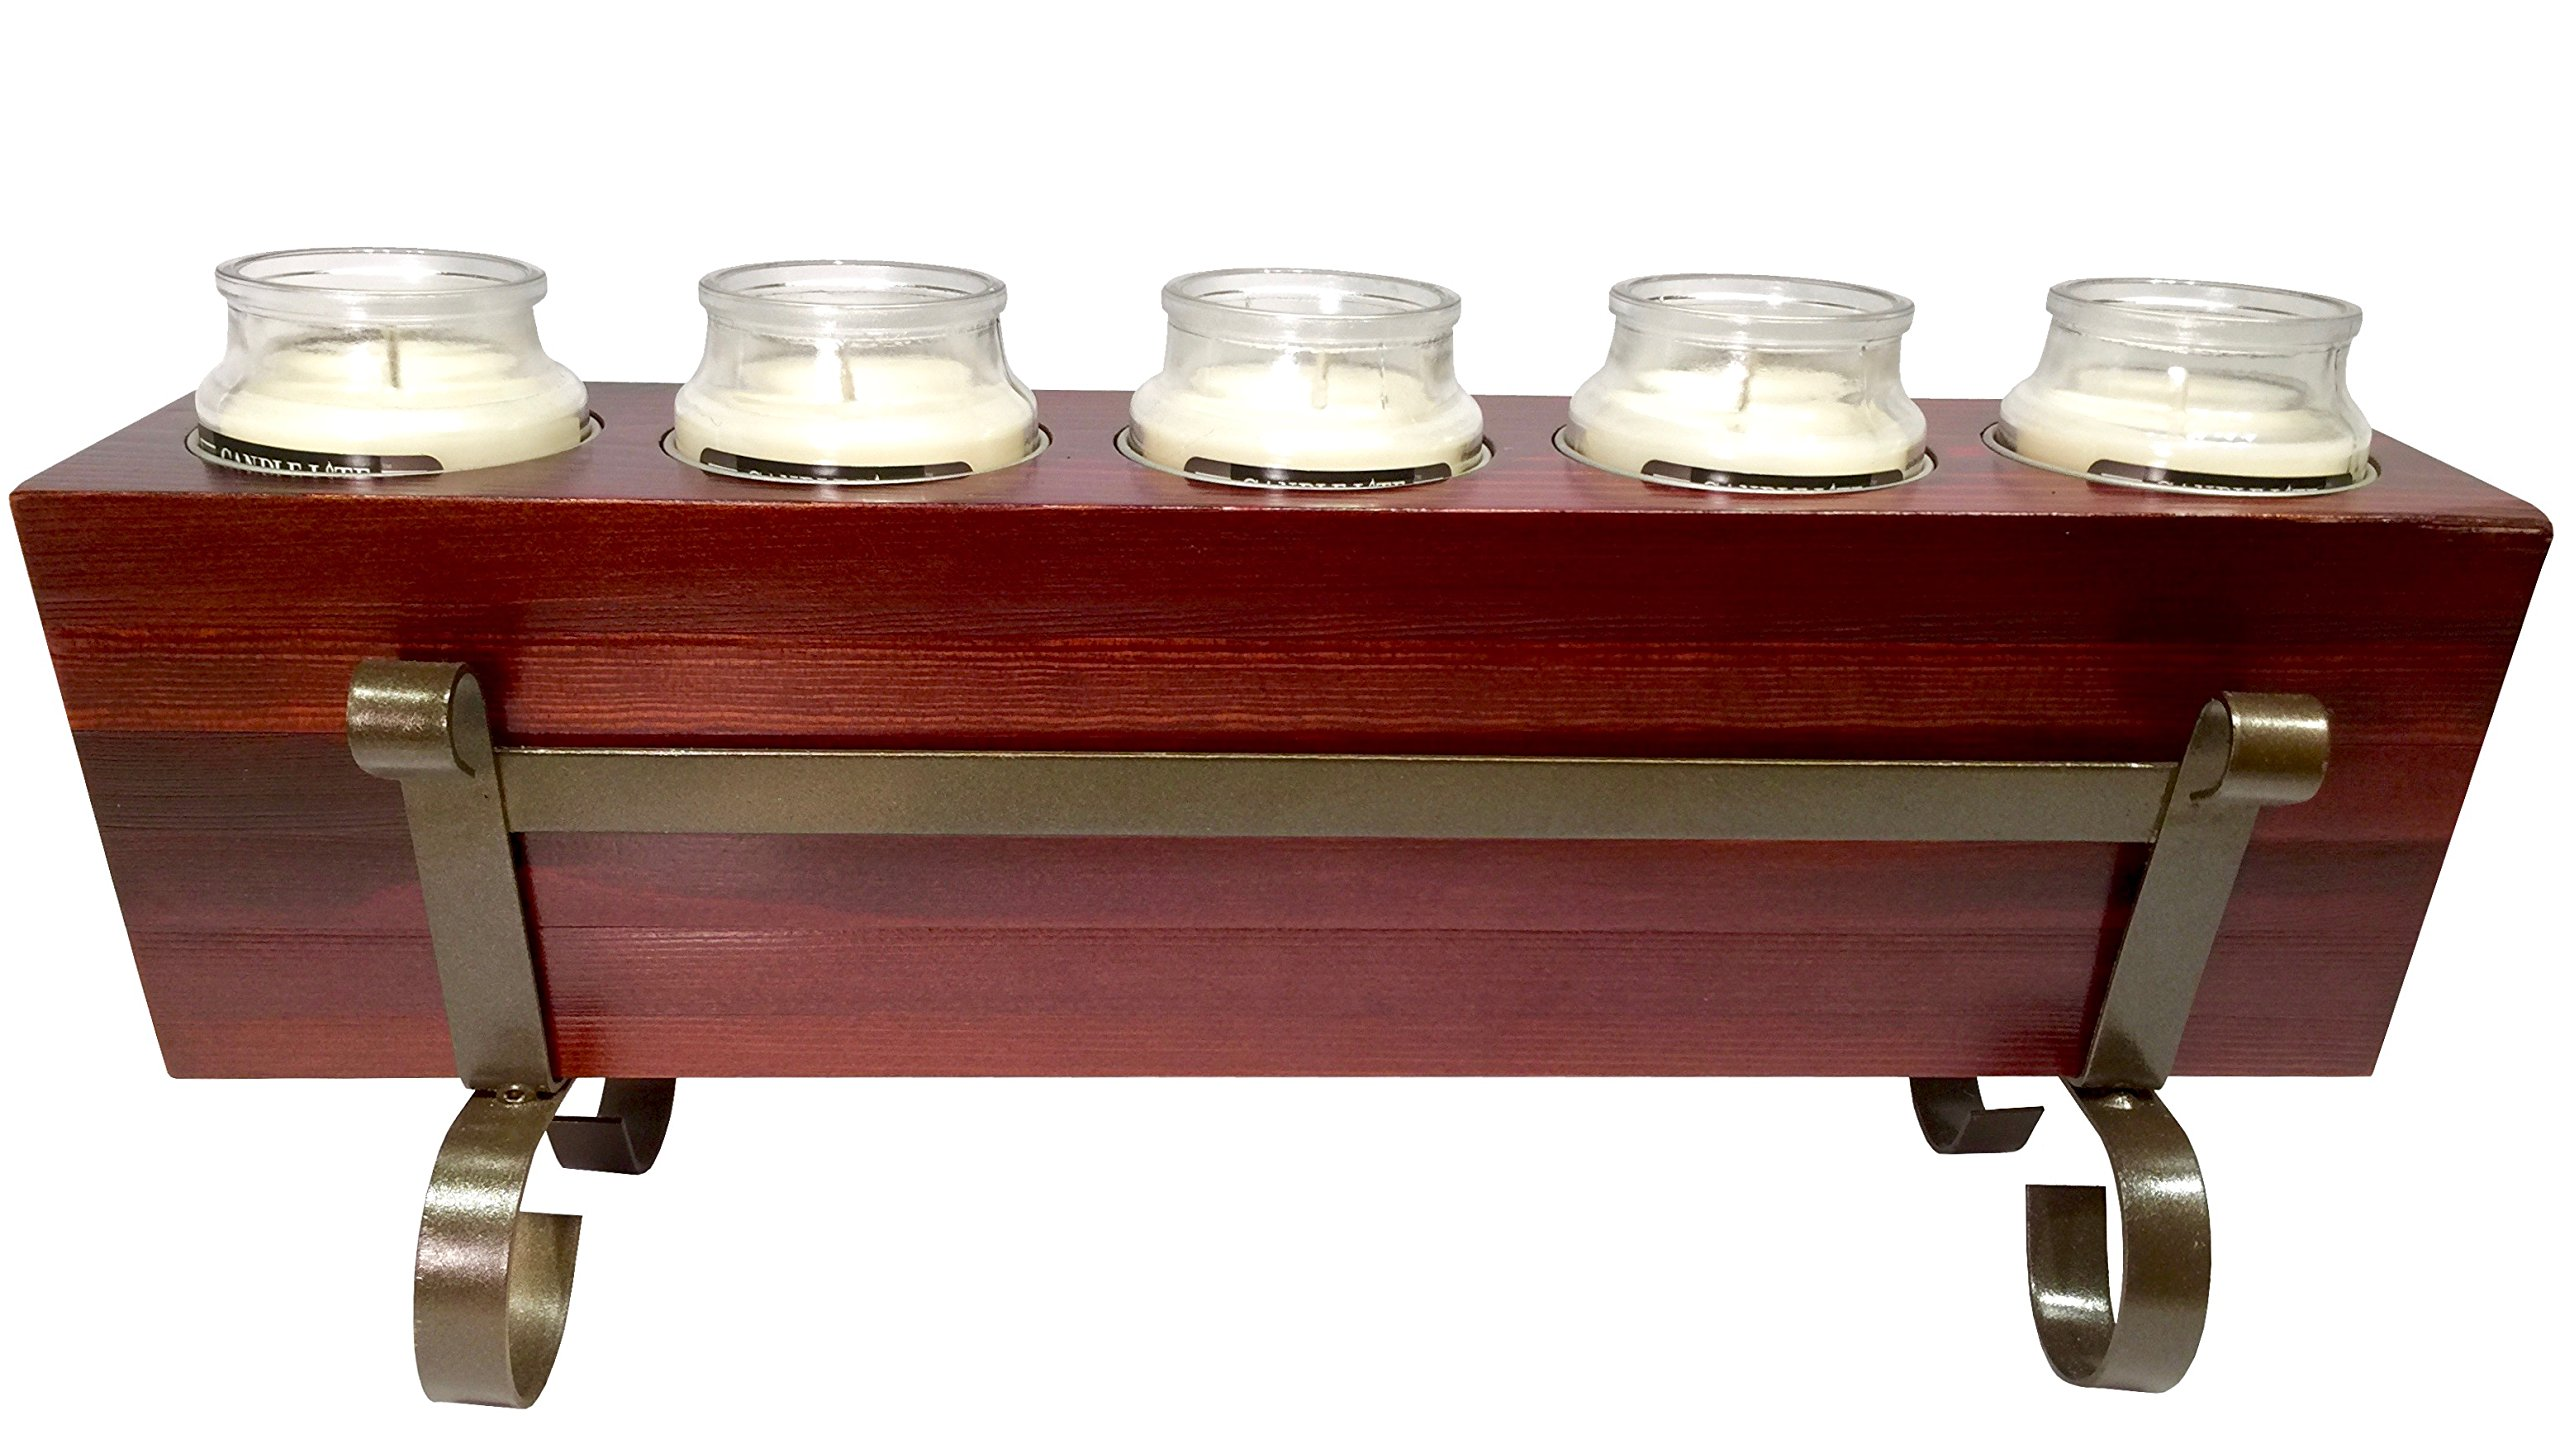 Wood Sugarmold Candle Holder Set - 5 Hole Tealight Candle Holder Includes Metal Base Stand and Tin Cups Succulent Holder Modern Home Decor - New in Gift Box! (5 Hole)